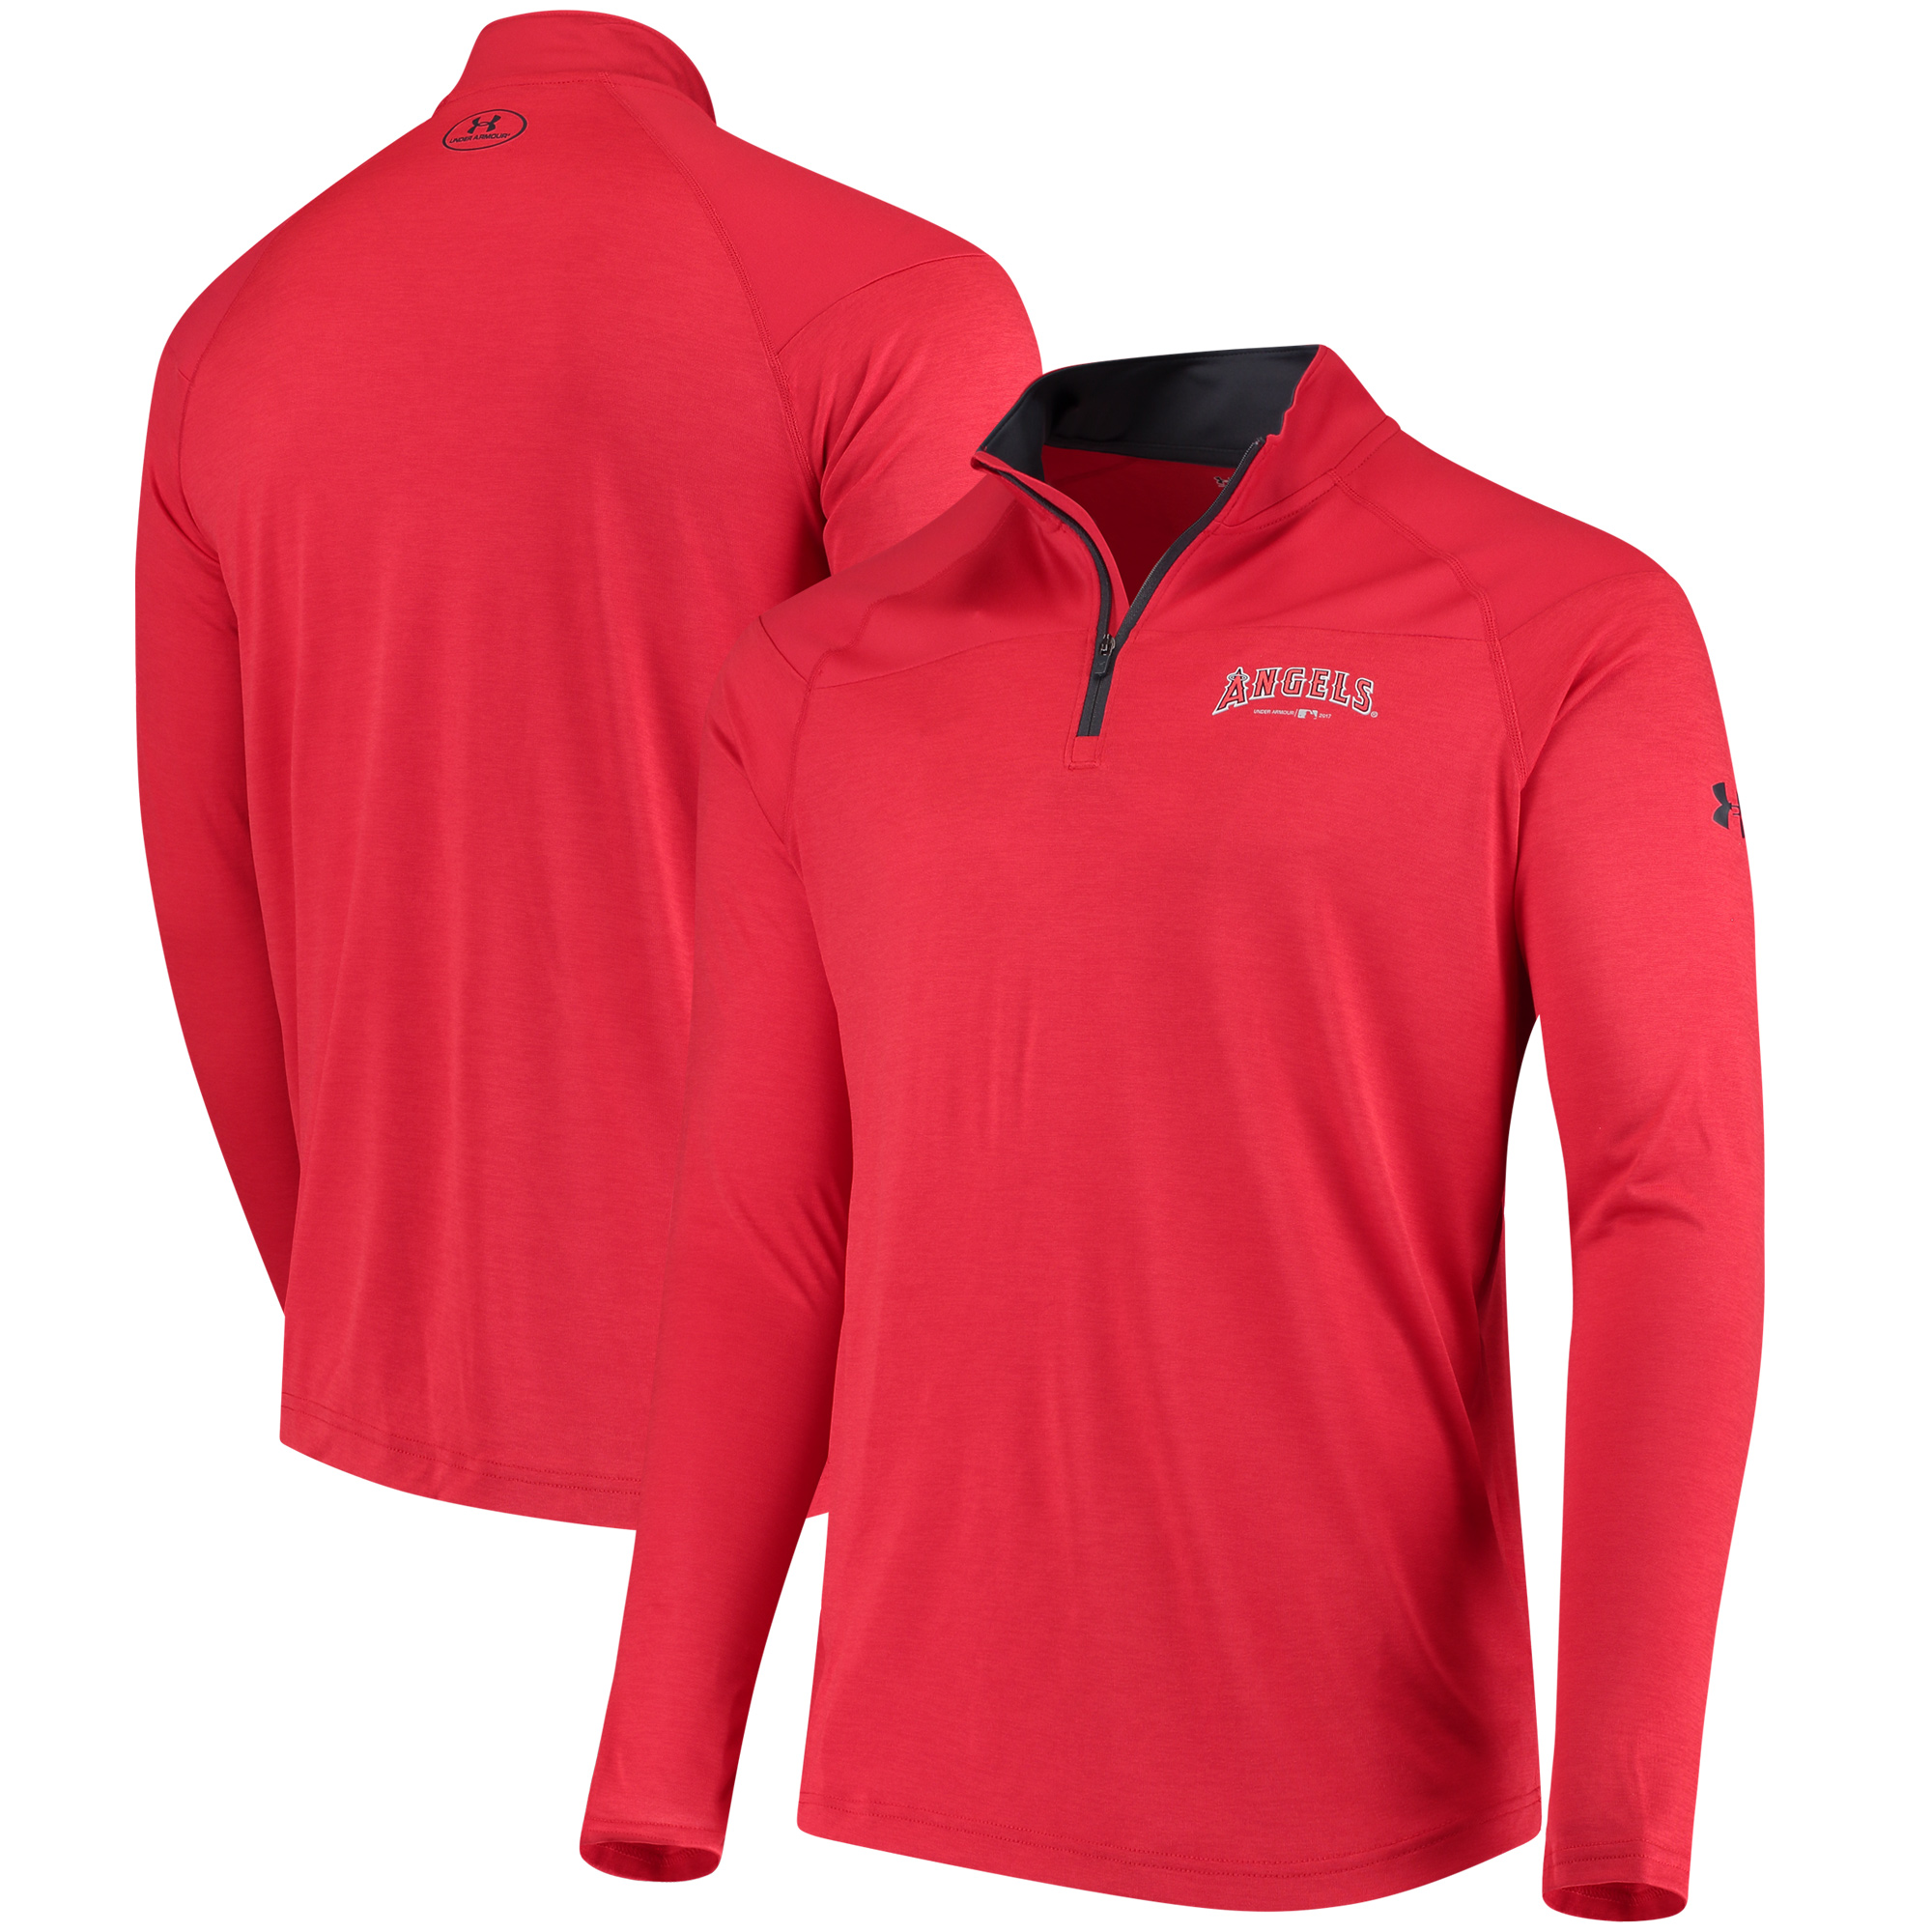 Men's Under Armour Red Los Angeles Angels Tech Tonal Twist Quarter-Zip Pullover Jacket